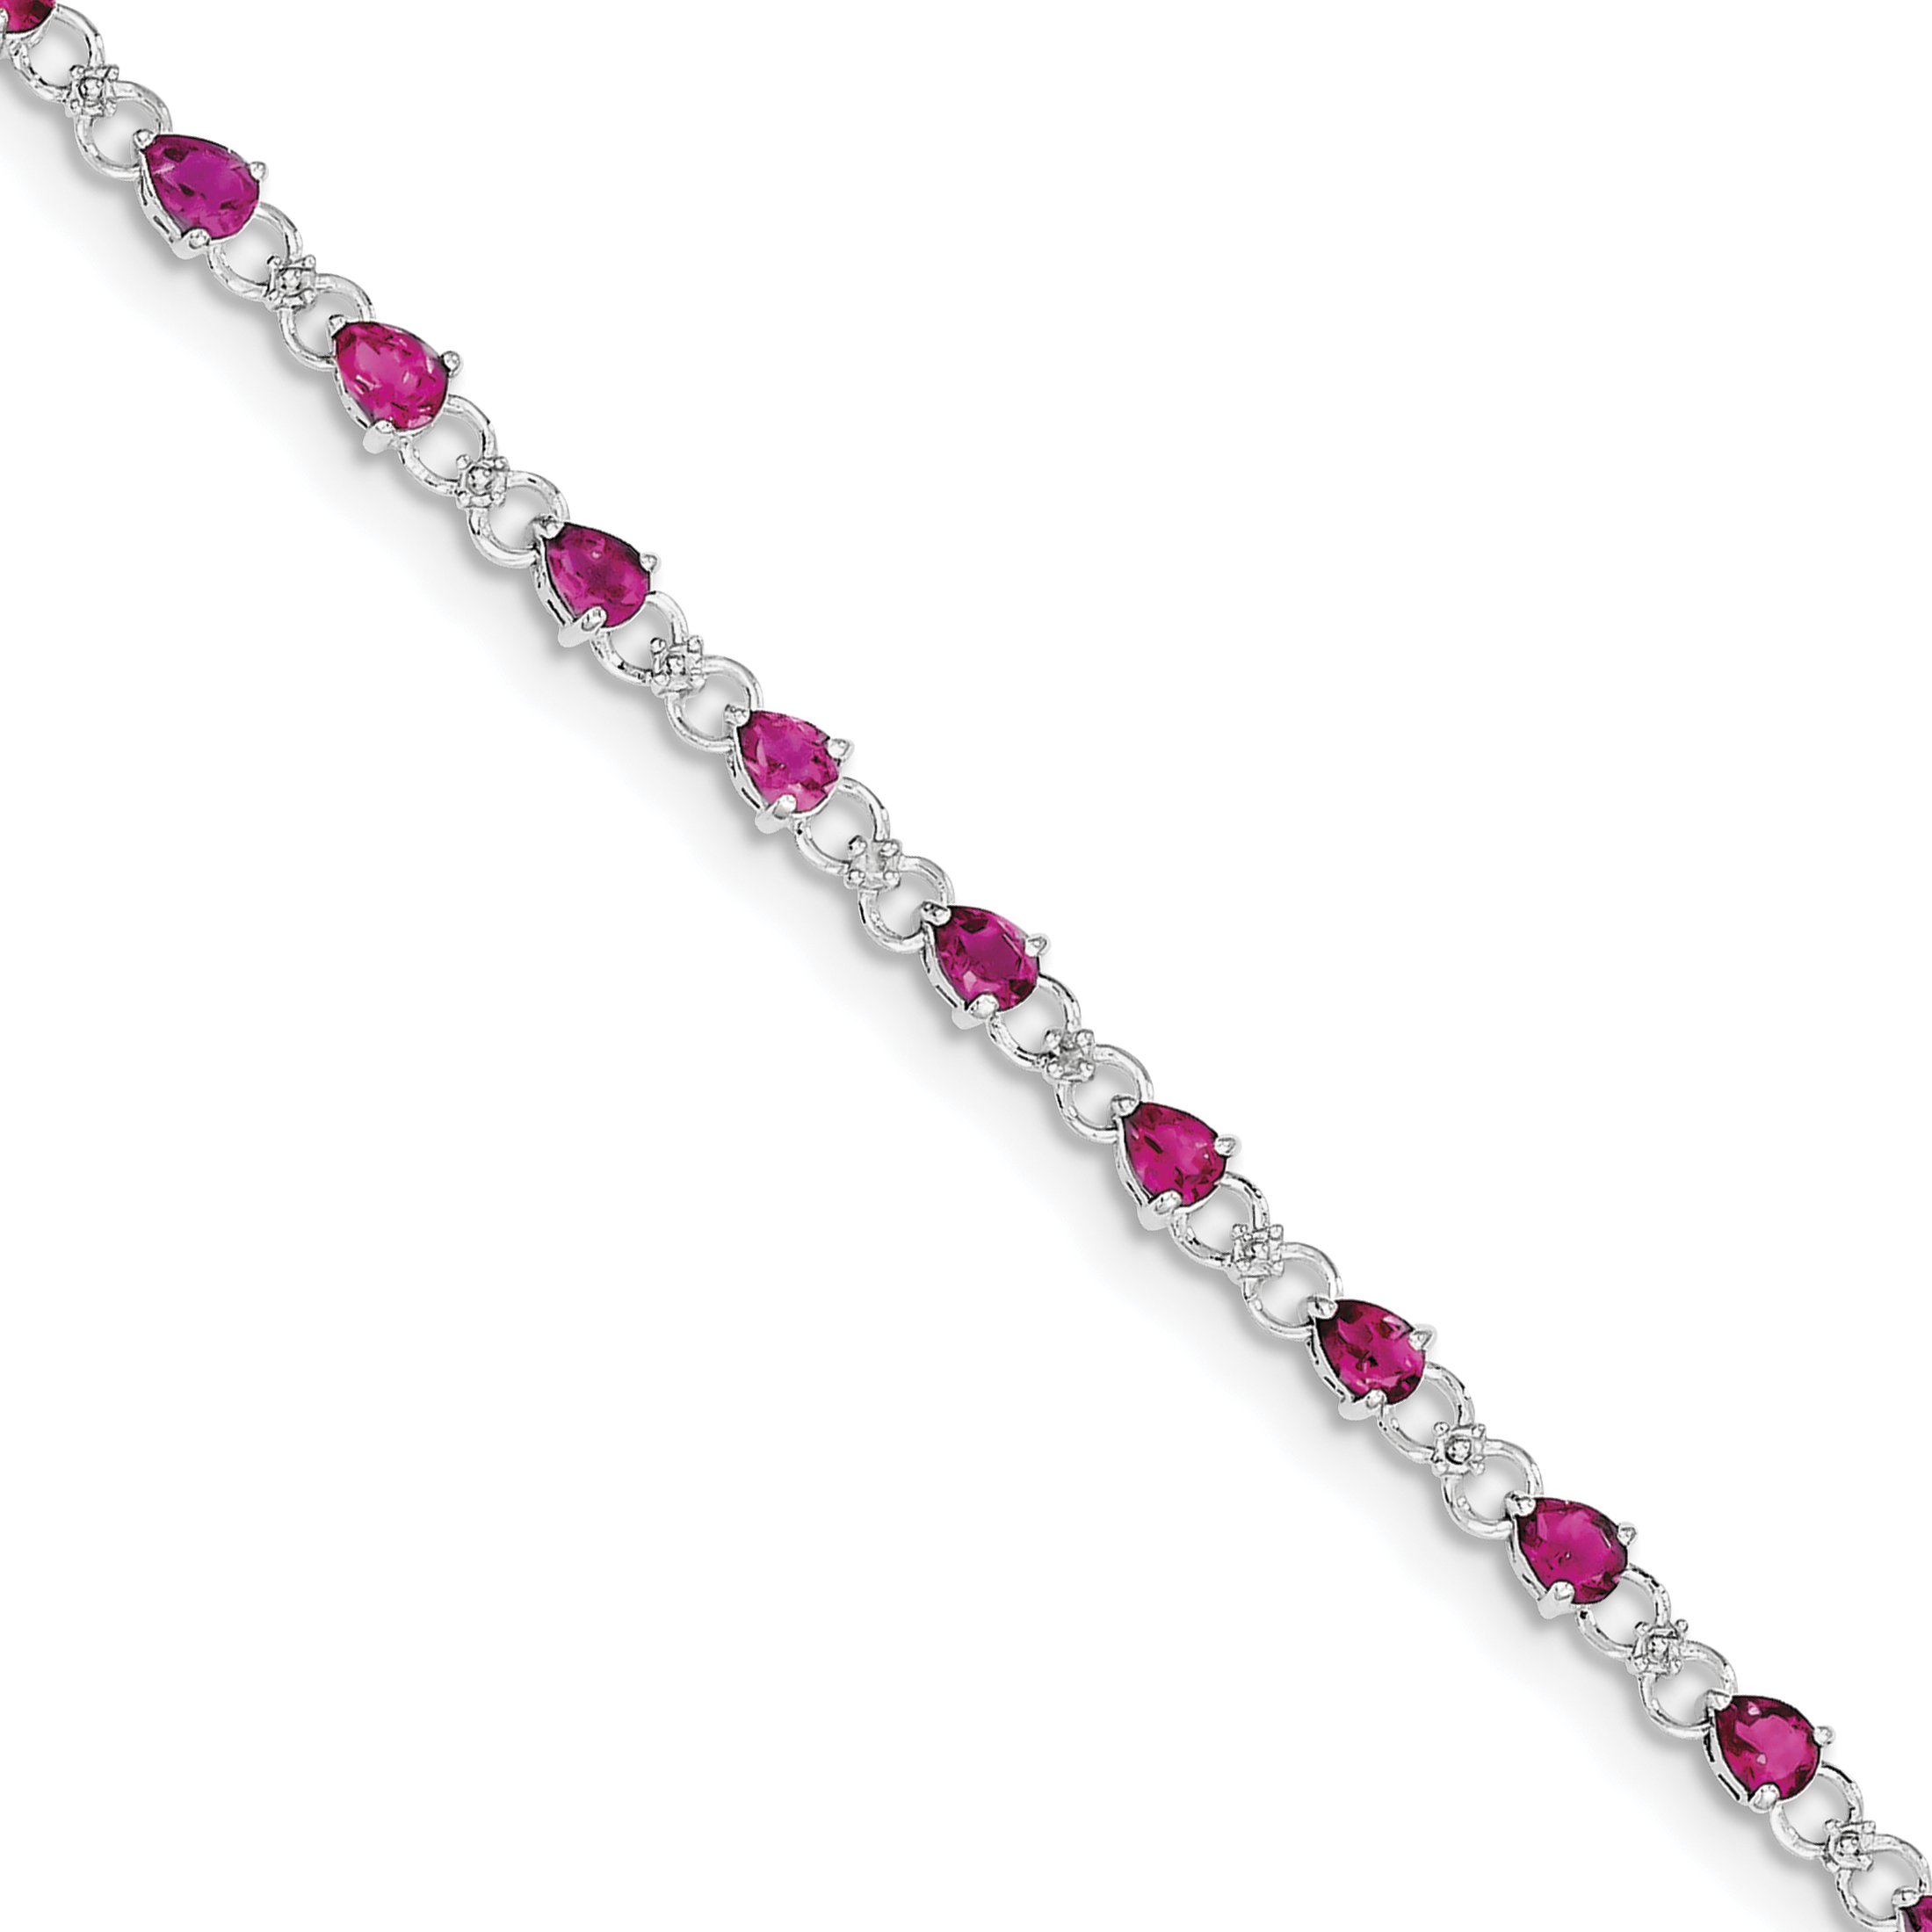 925 Sterling Silver Rhodium-plated Pink Tourmaline and Diamond Bracelet by